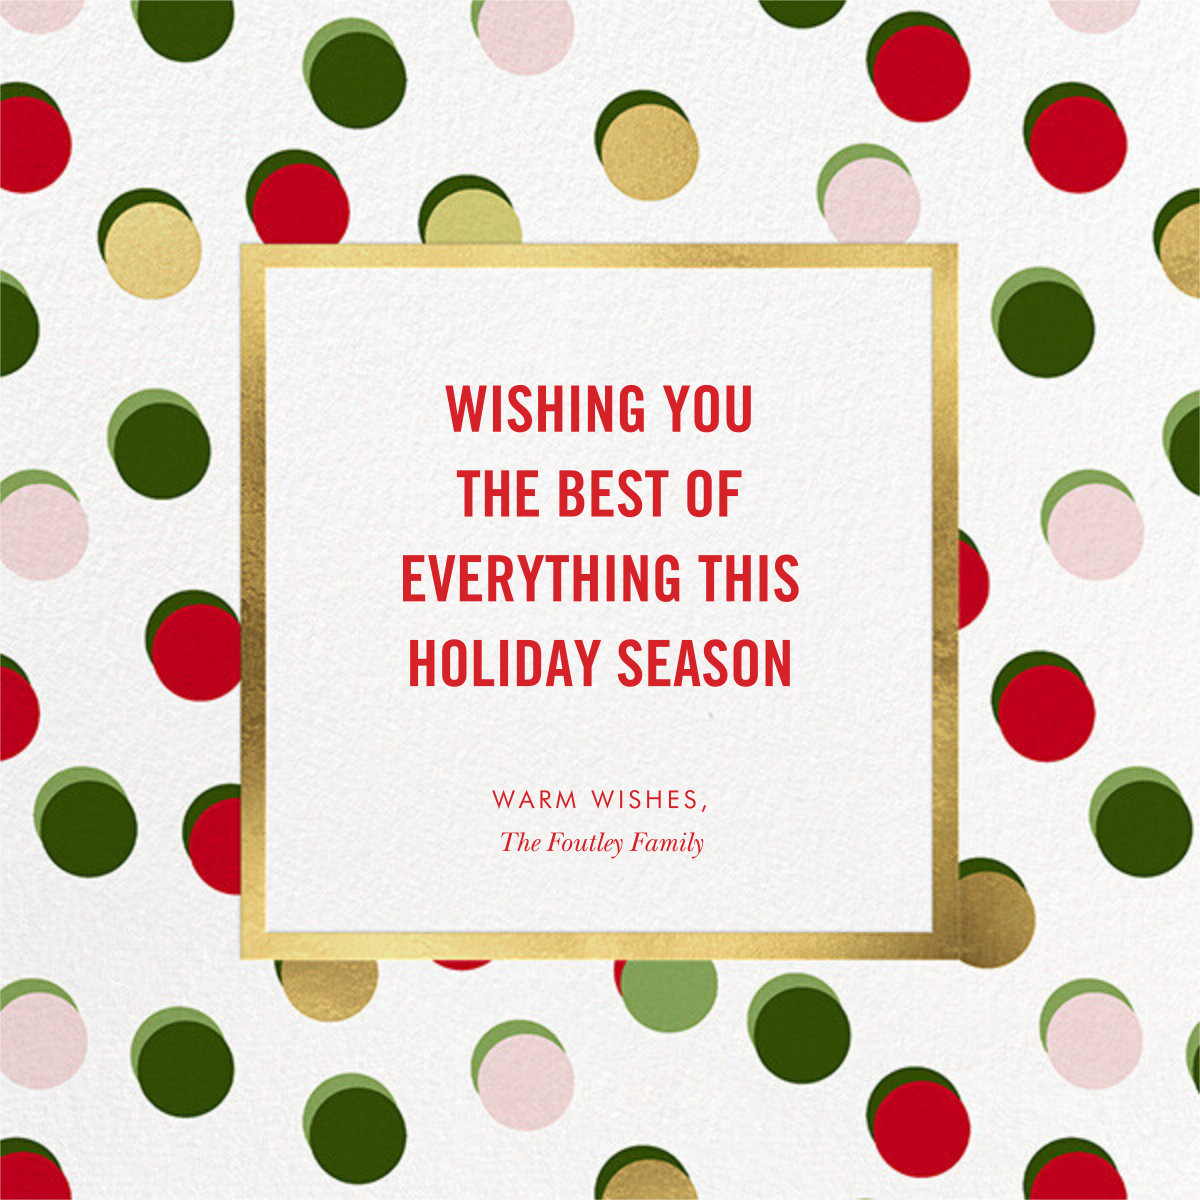 Hot Dotties Photo - kate spade new york - Holiday cards - card back